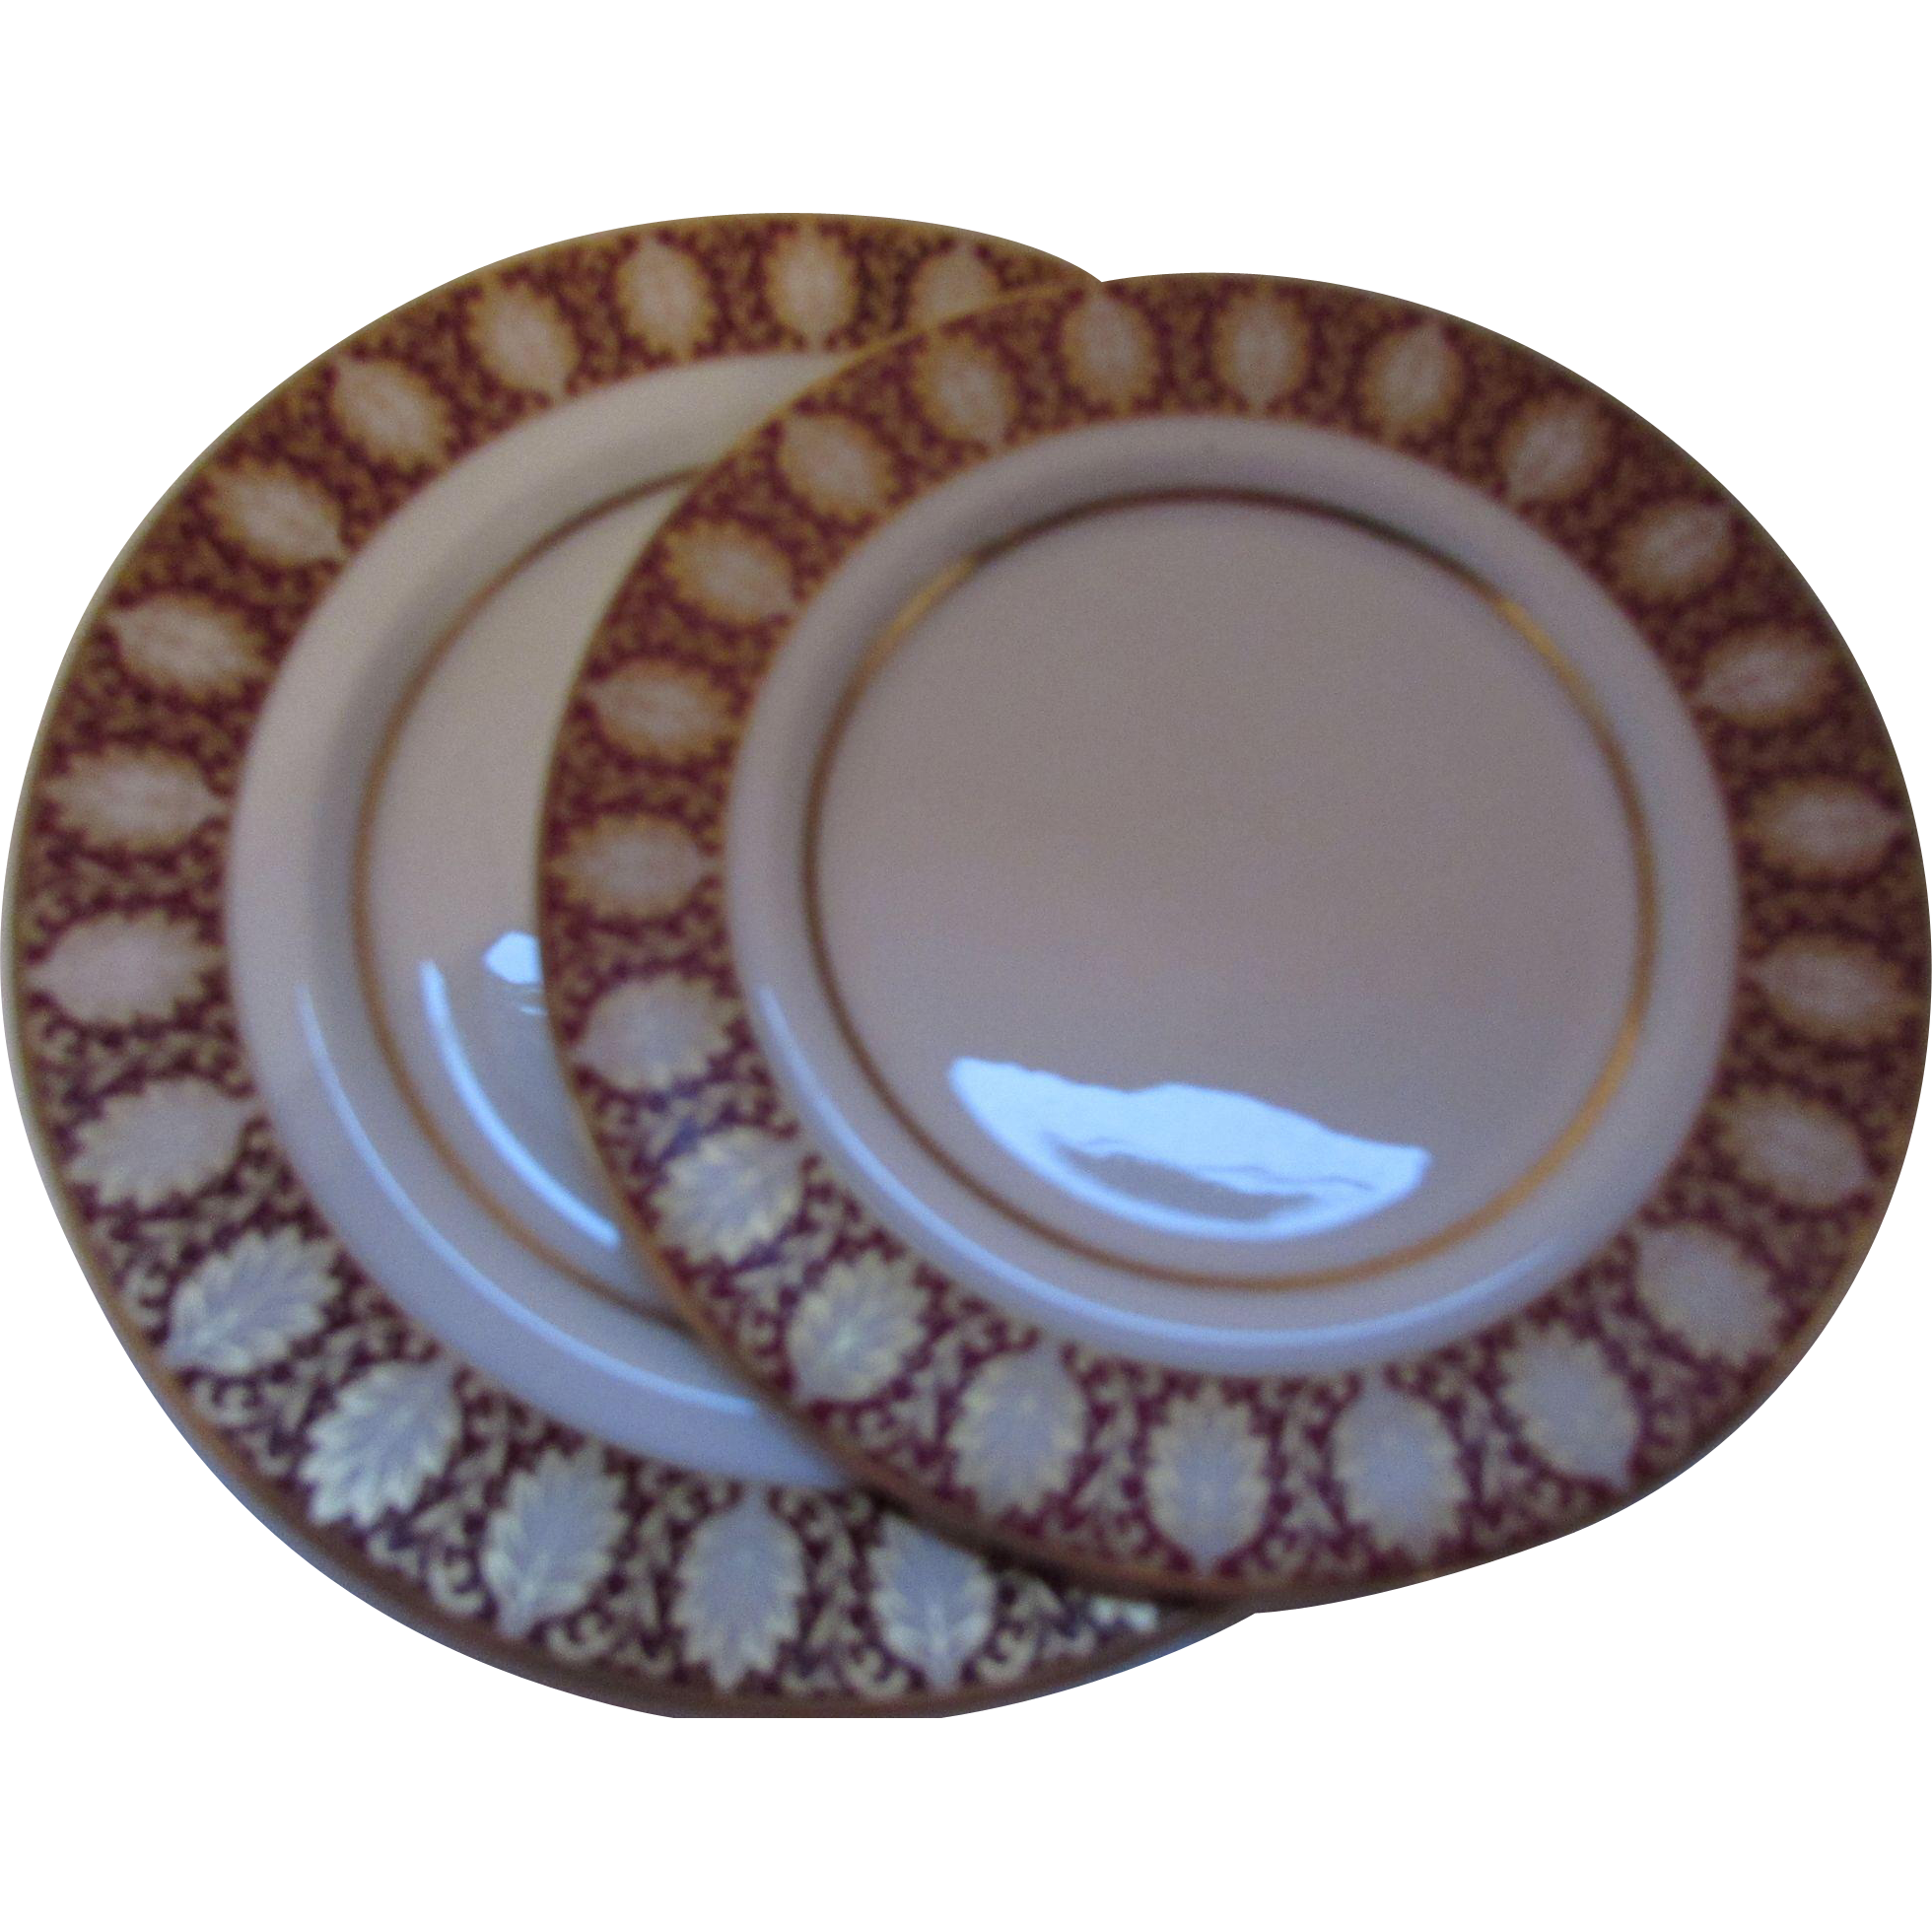 1974 Mikasa Westhampton 4 Piece Salad Plate China Table Ware